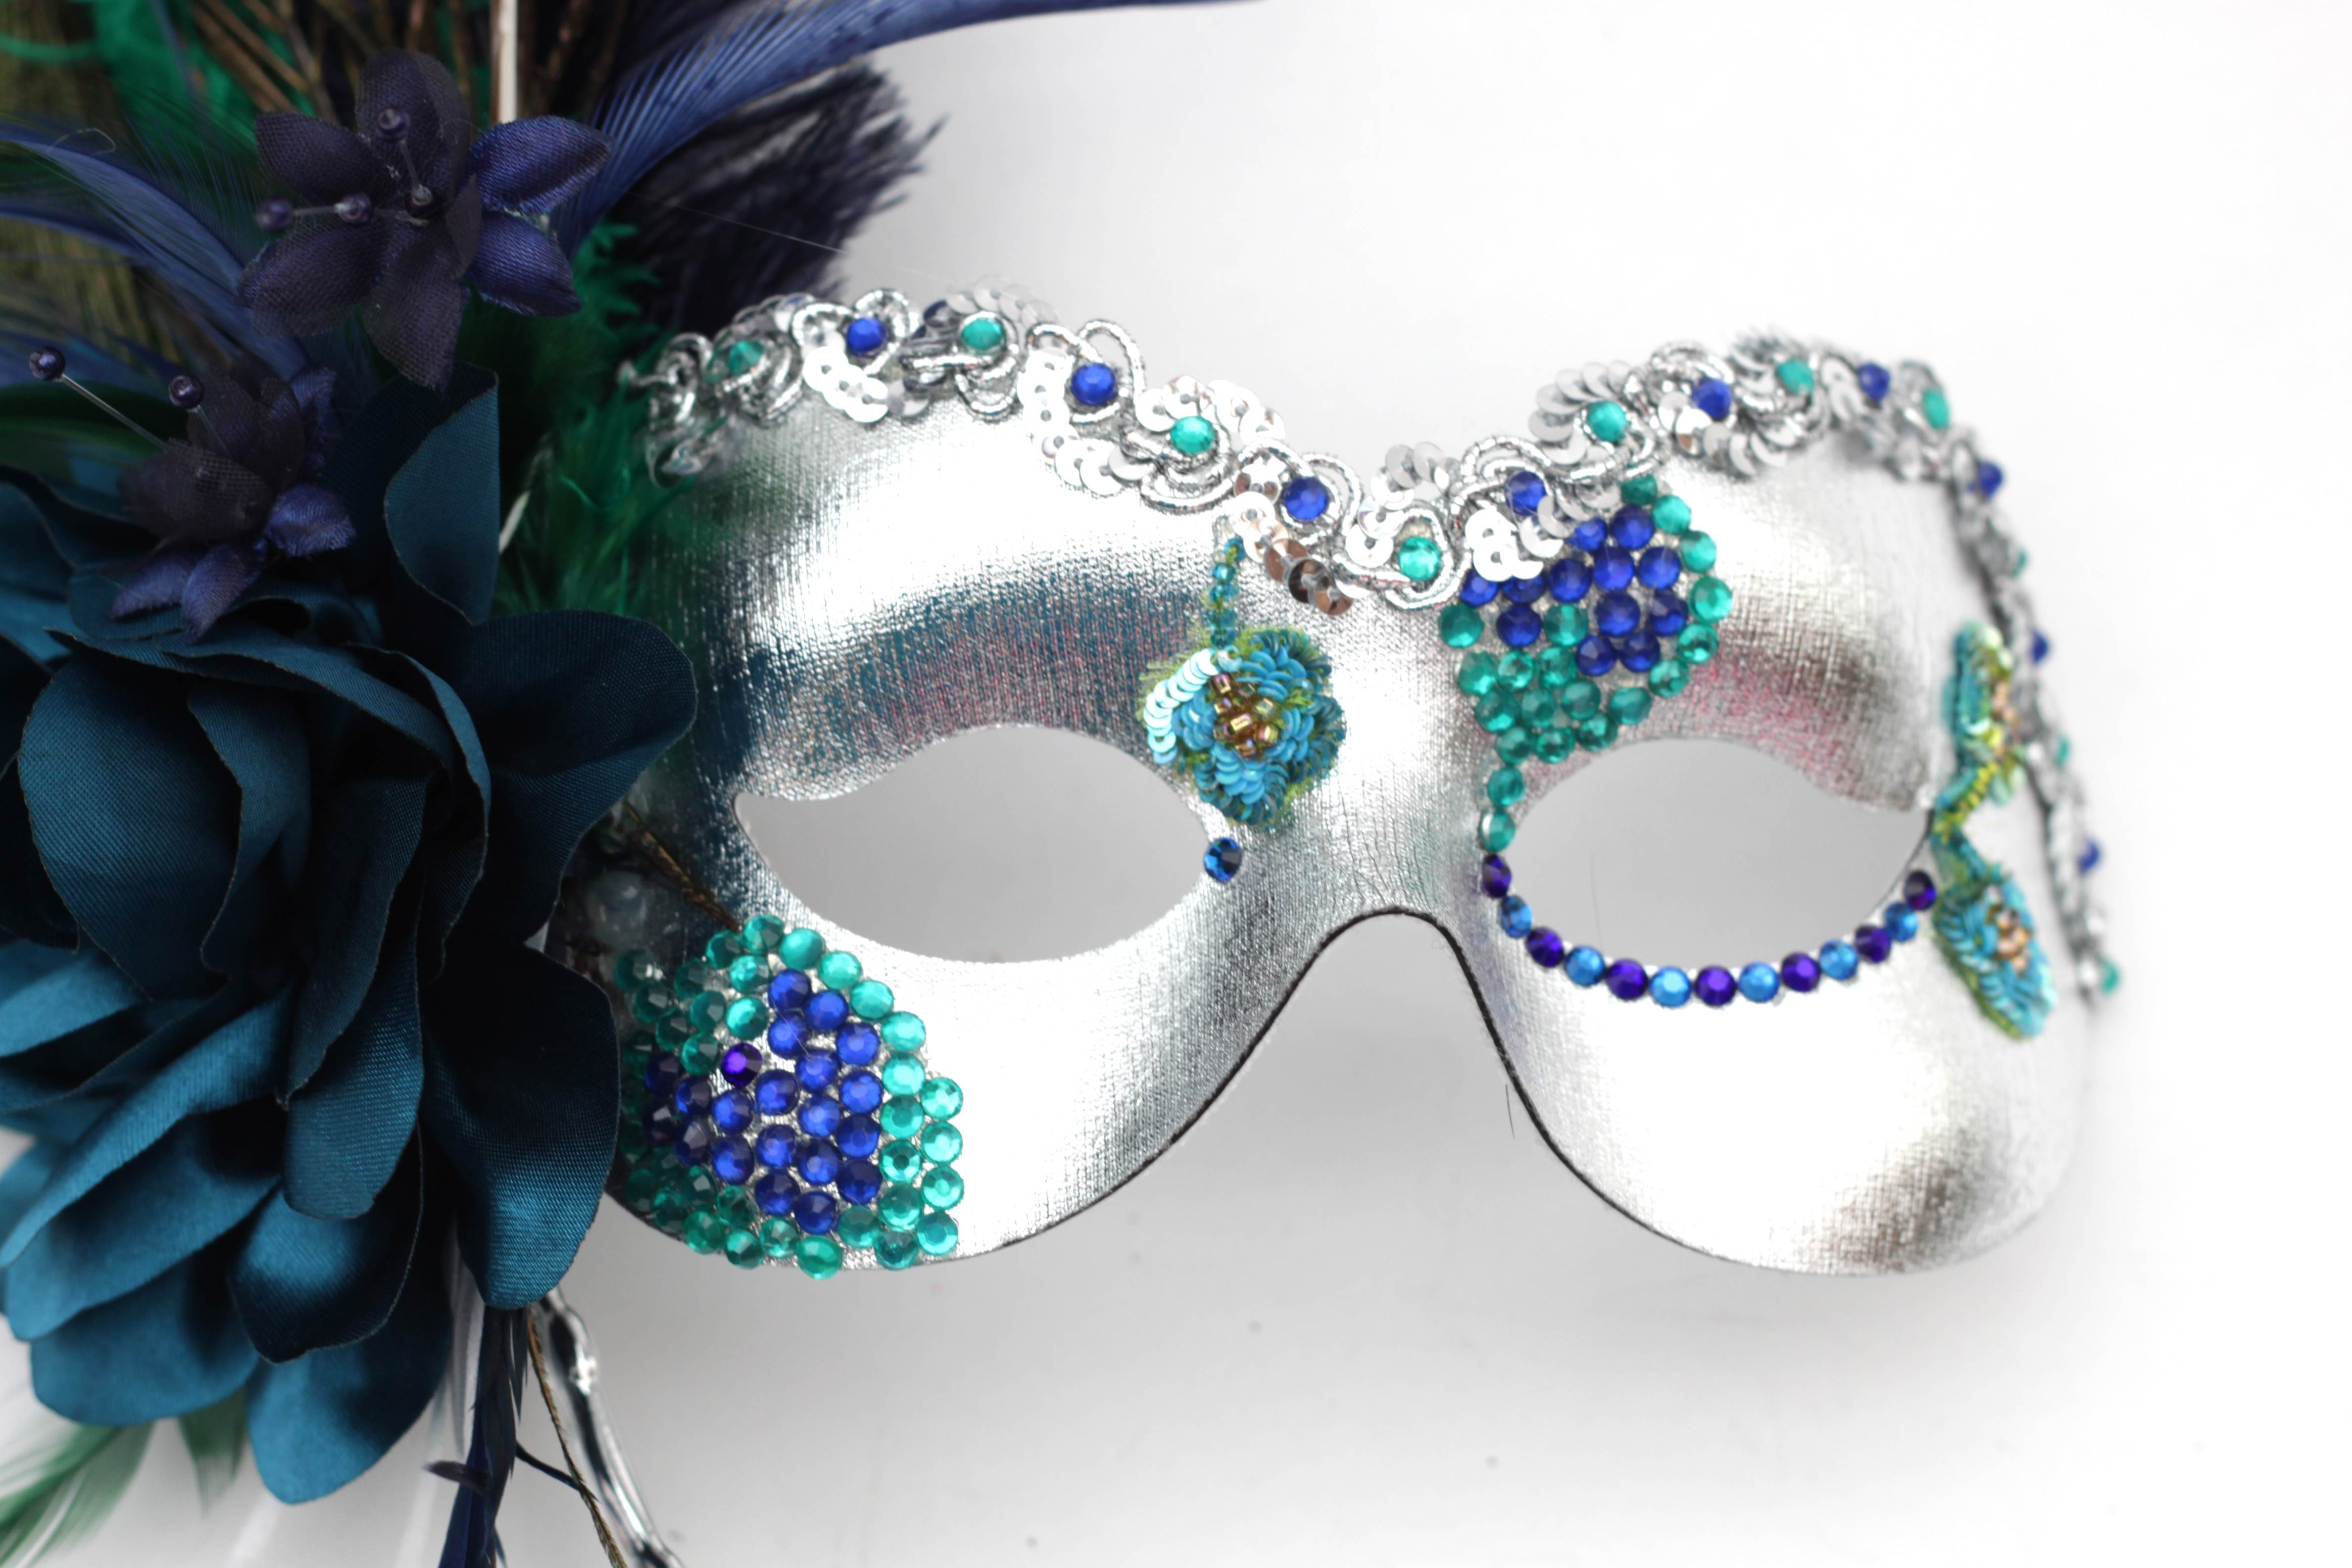 Blog on all things related to Masquerade Weddings by Masque Boutique